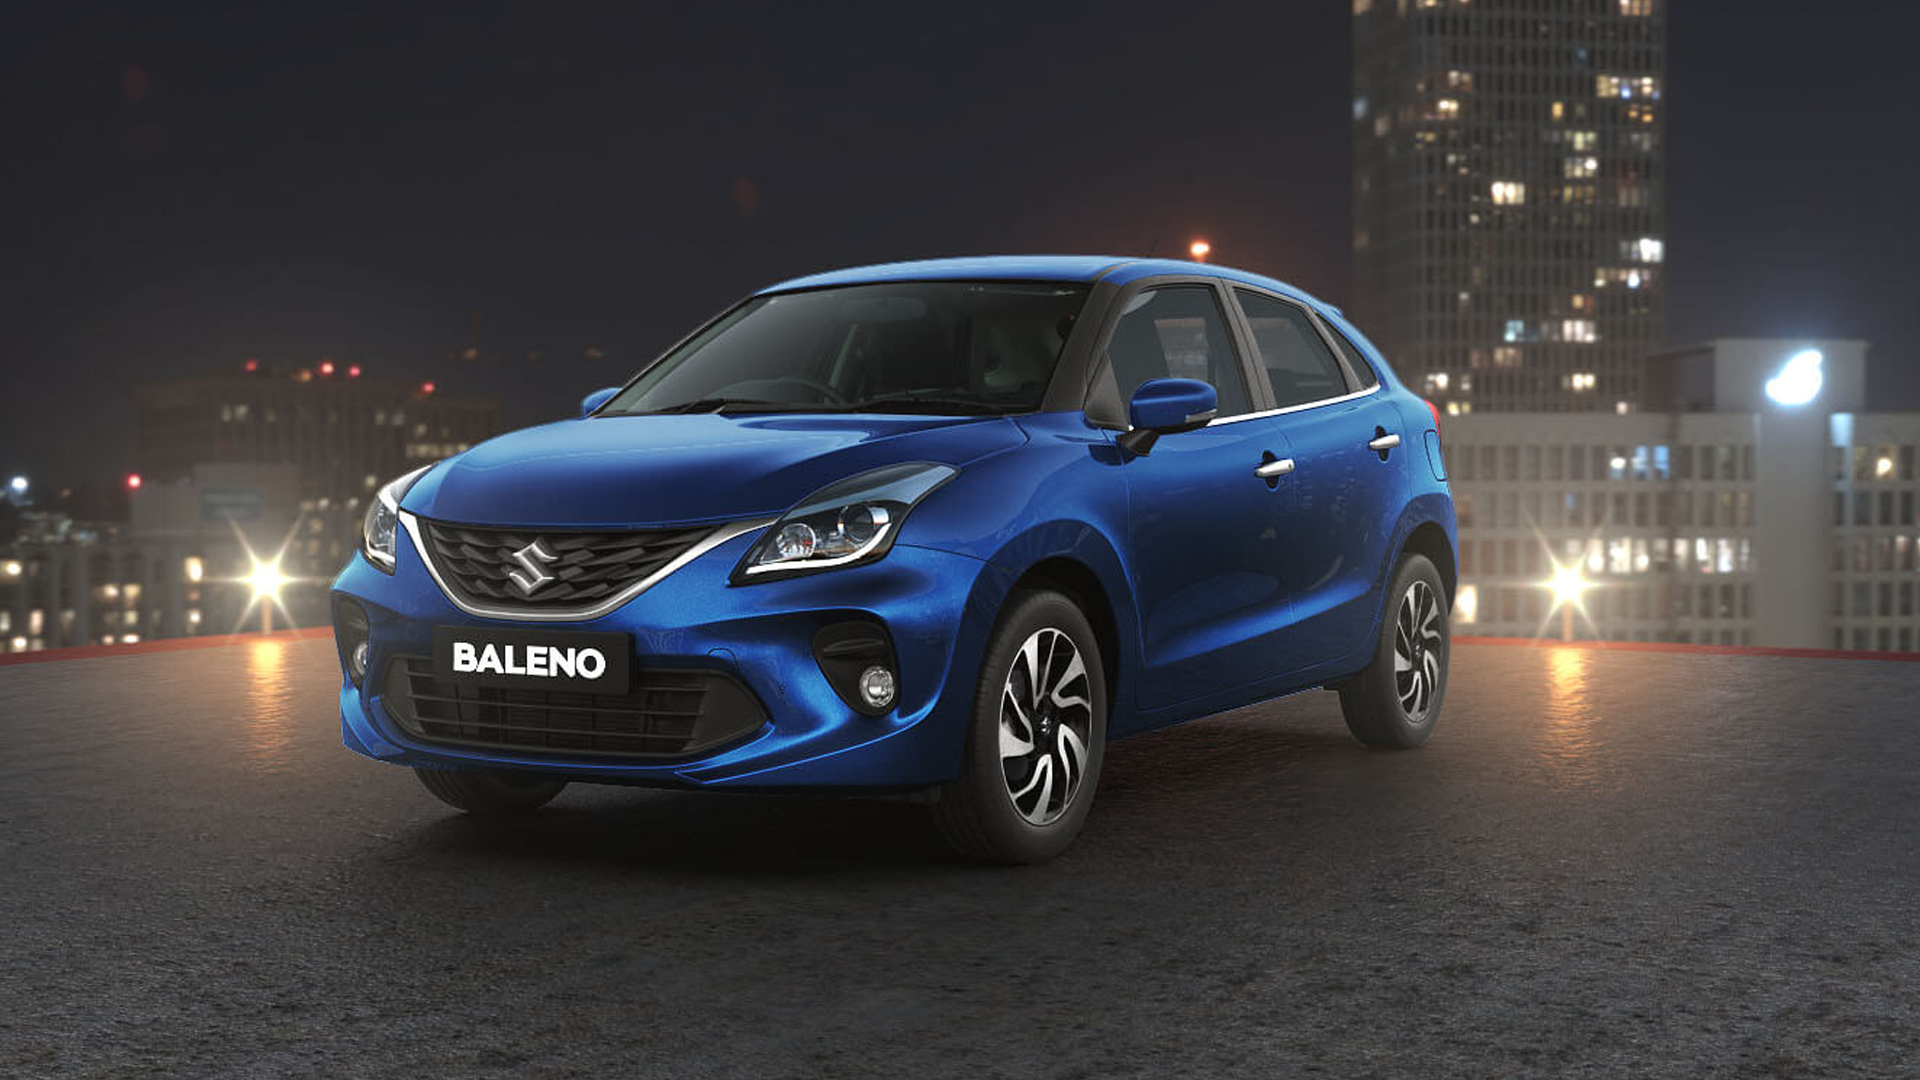 Maruti Suzuki Baleno 2019 - Price, Mileage, Reviews, Specification ...